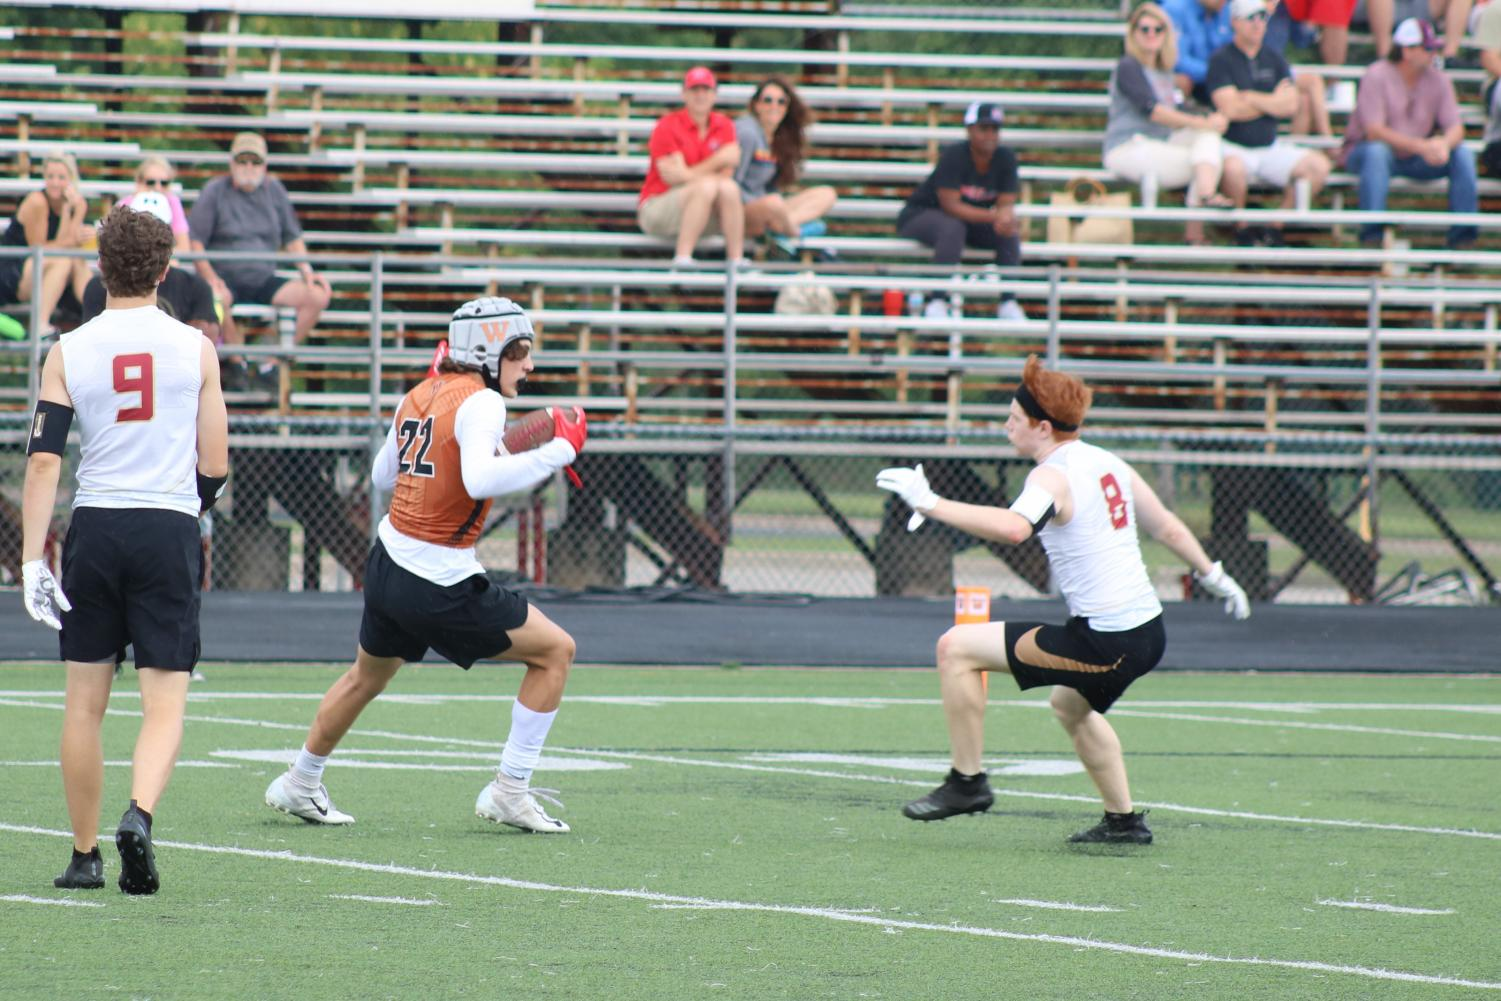 Drew+Goodall+%2721+gets+an+interception+and+tries+to+get+past+the+receiver.